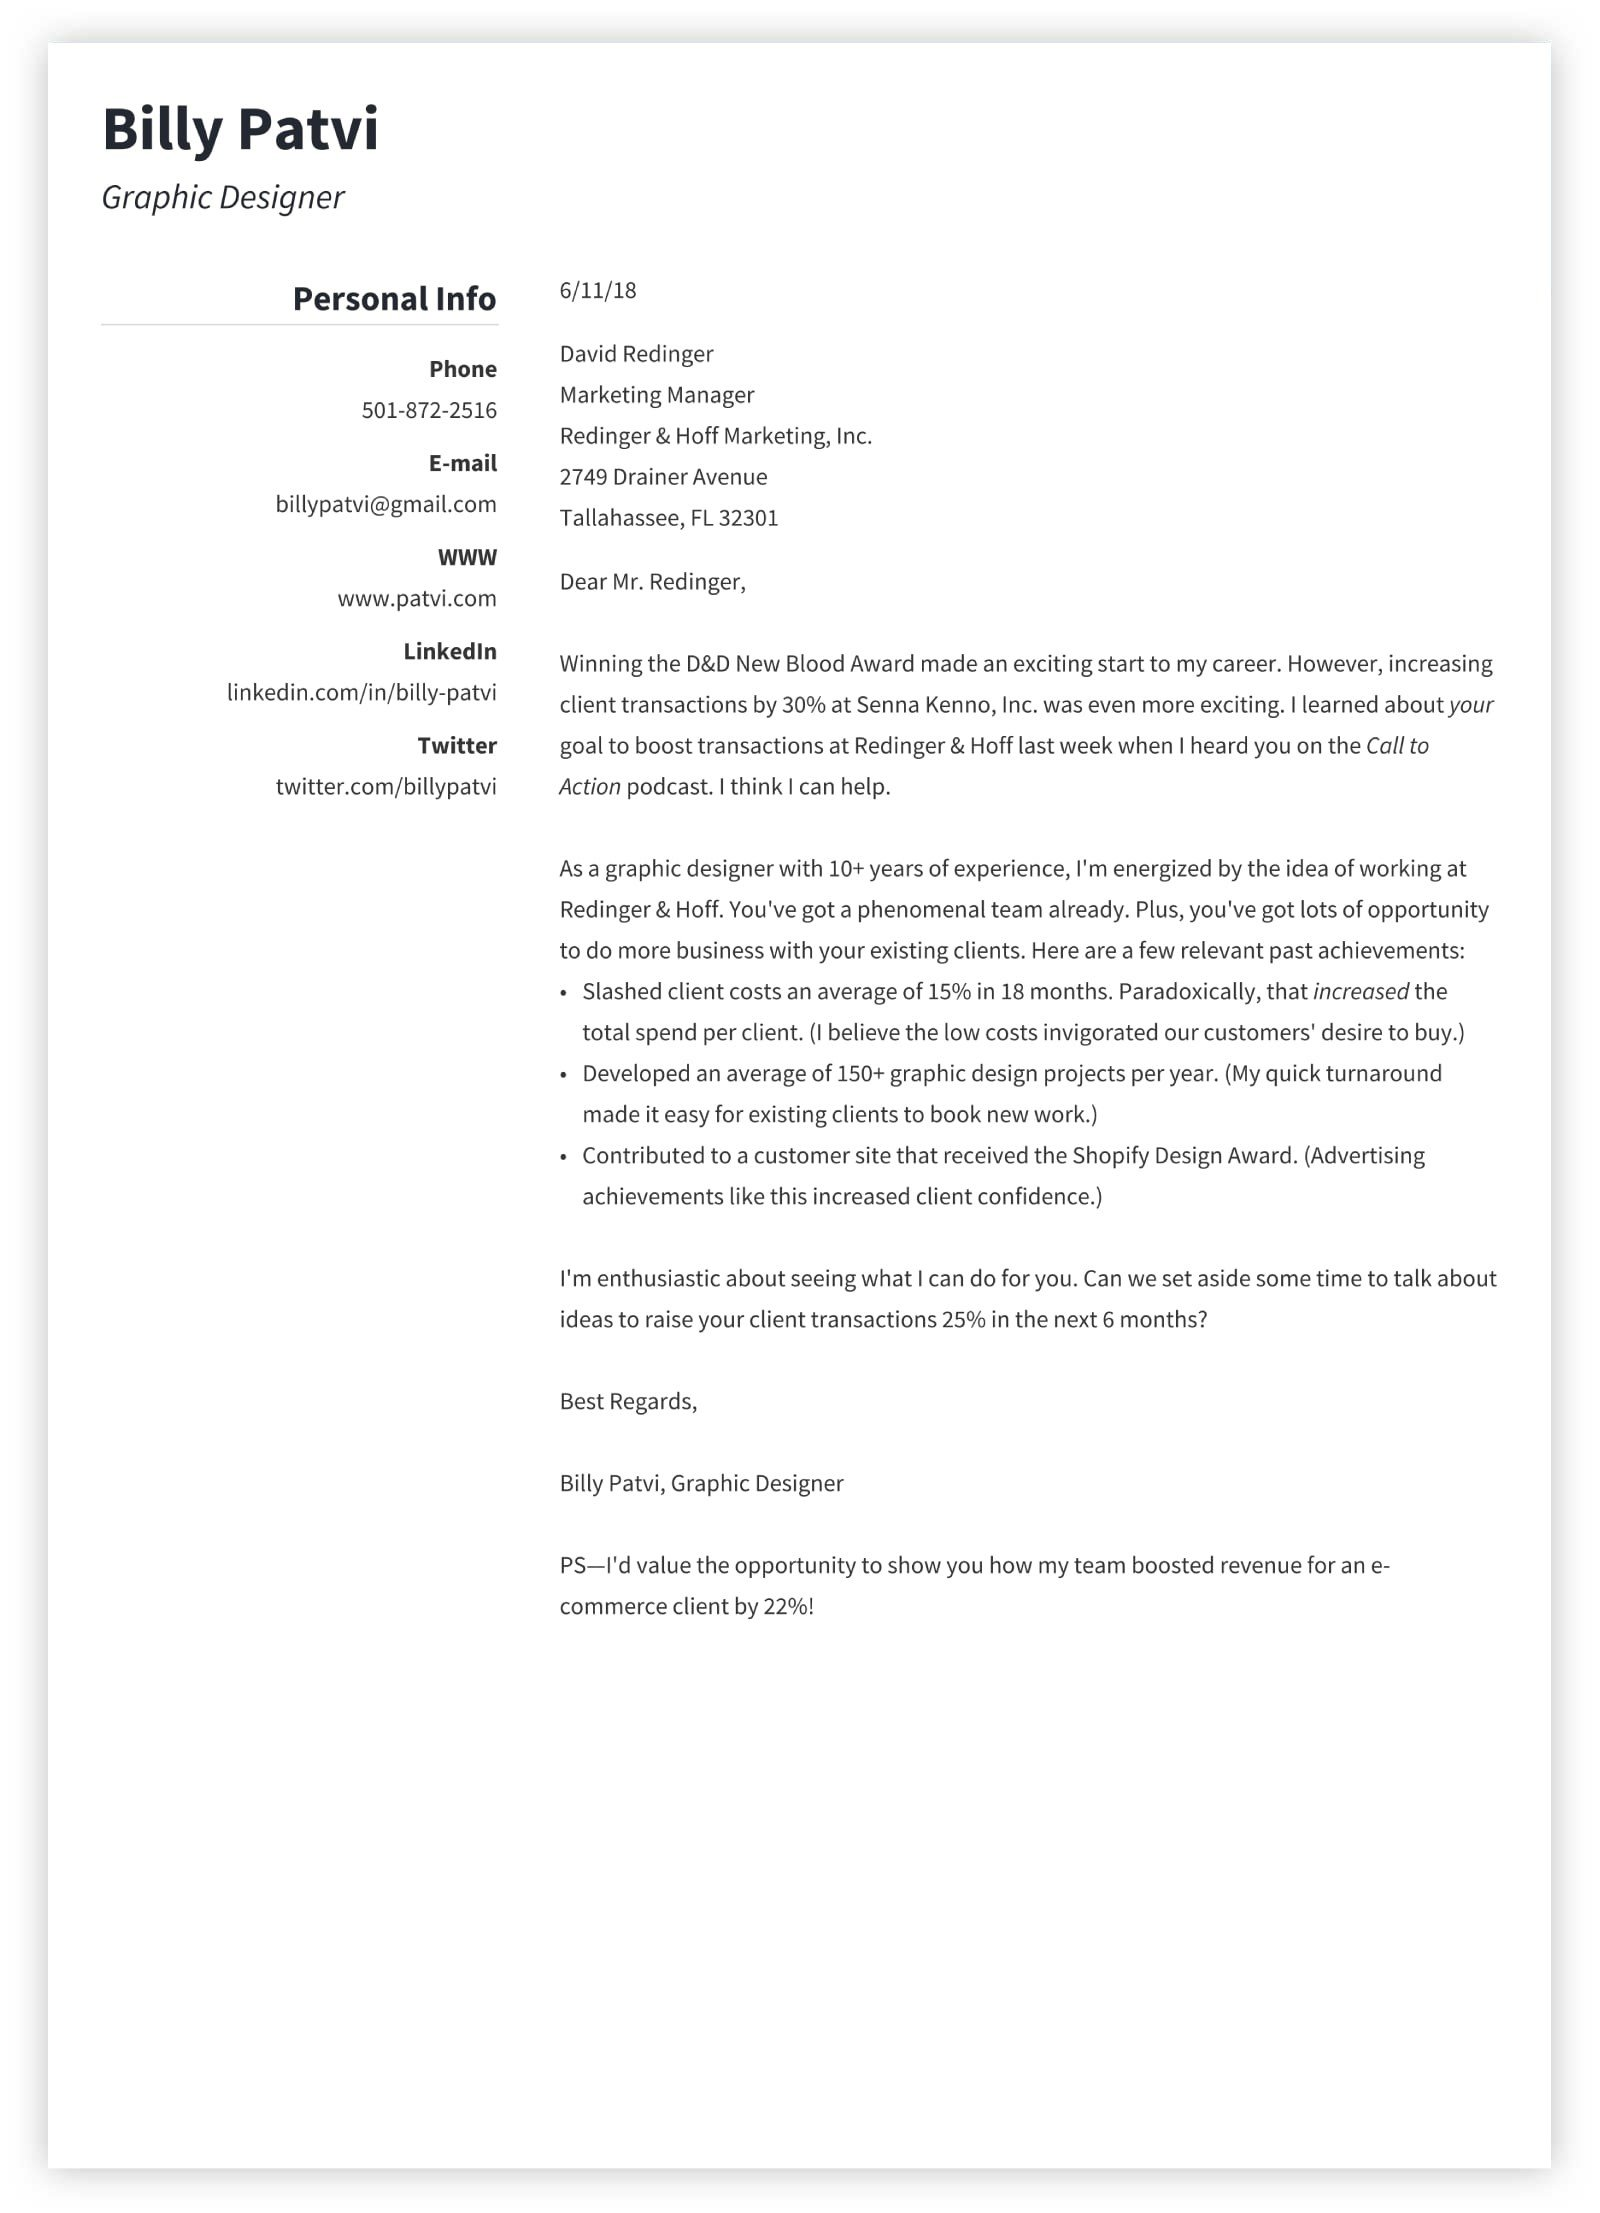 Cover Letter To Resume from cdn-images.zety.com